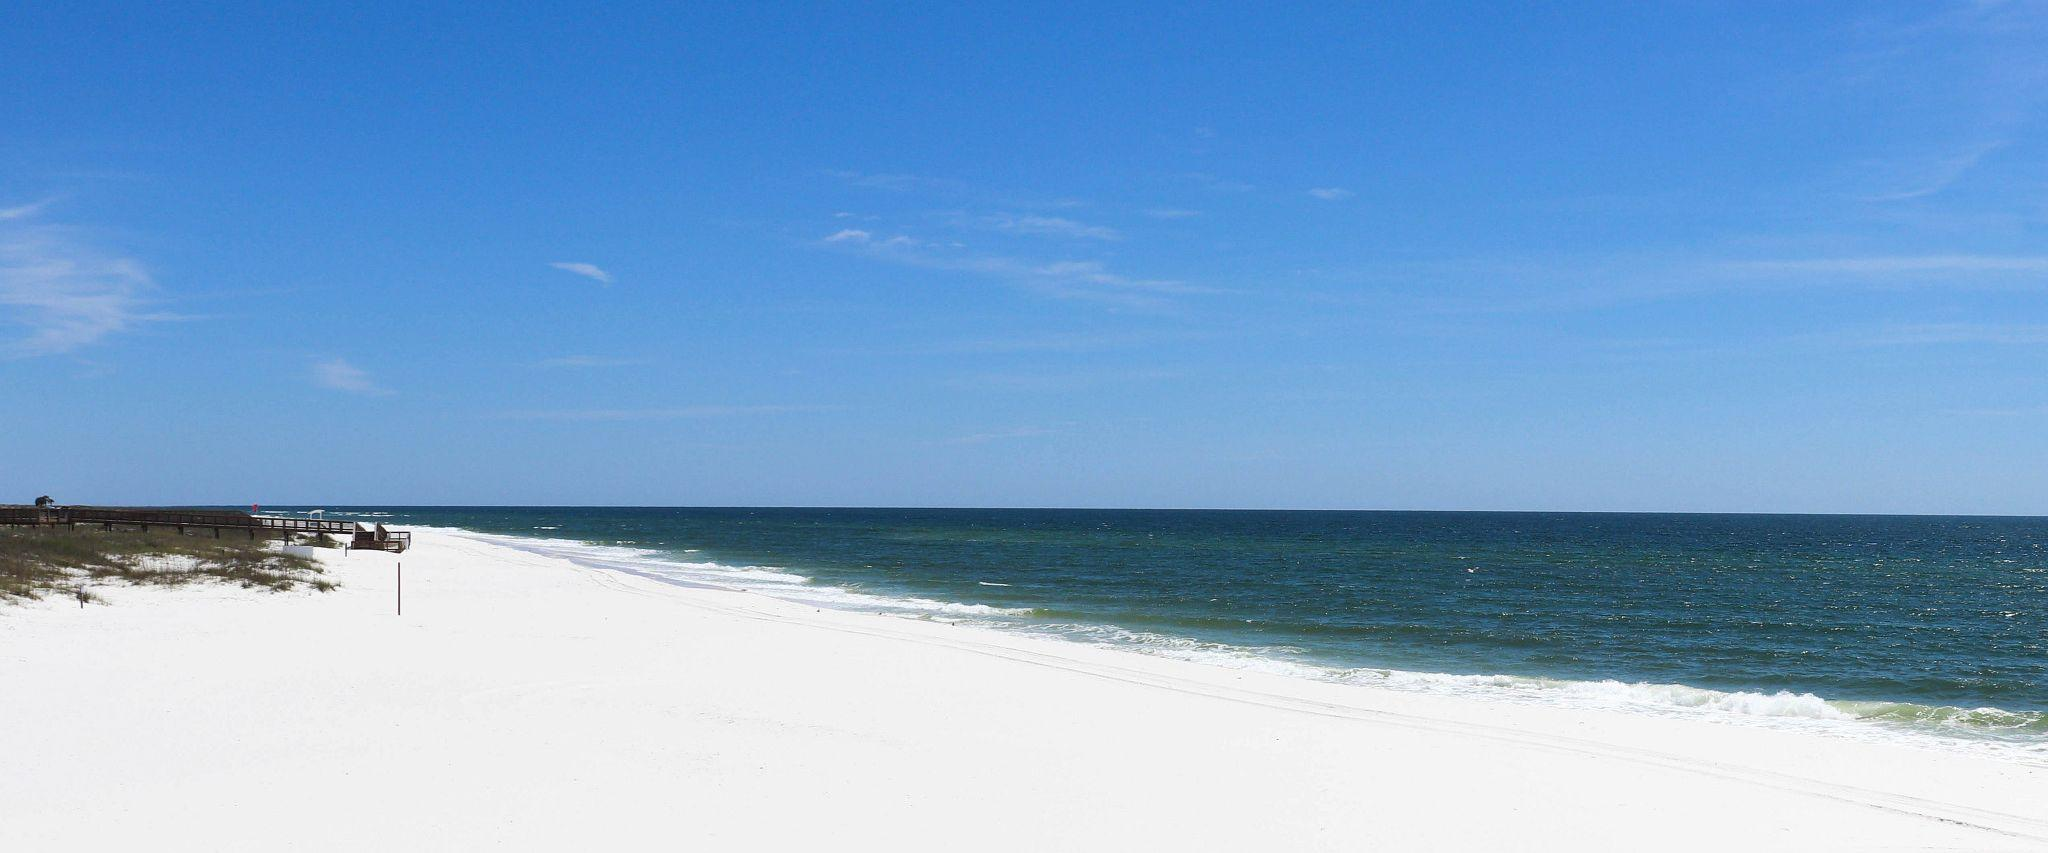 Alabama's sugar-white sand beaches and turquoise waters